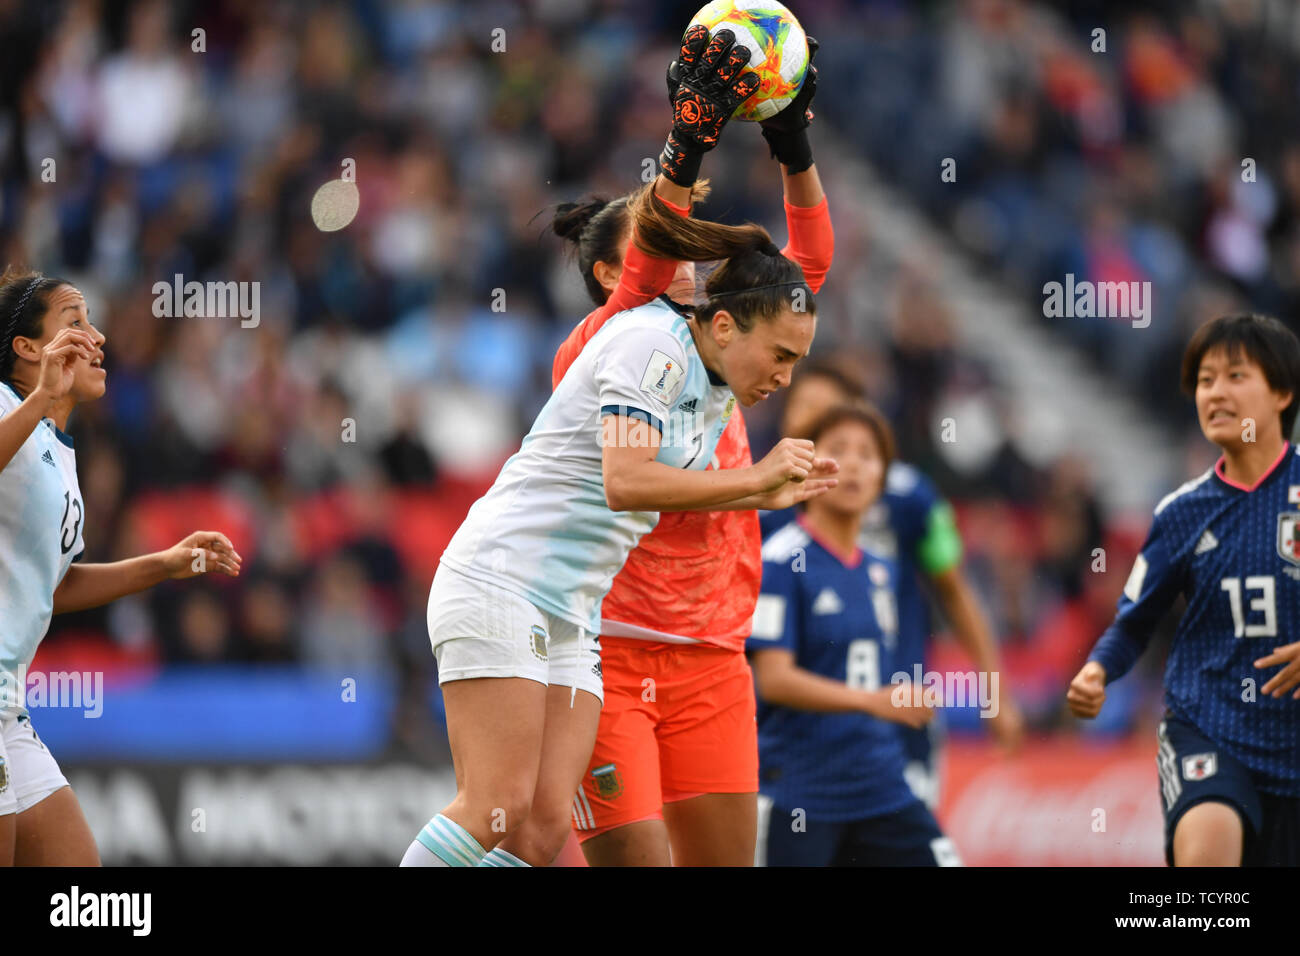 10 june 2019 Paris, France Soccer Women's World Cup France 2019: Argentina v Japan   Carlos Borrello (Argentinien) (Coach , Trainer)) catches the Ball - Stock Image